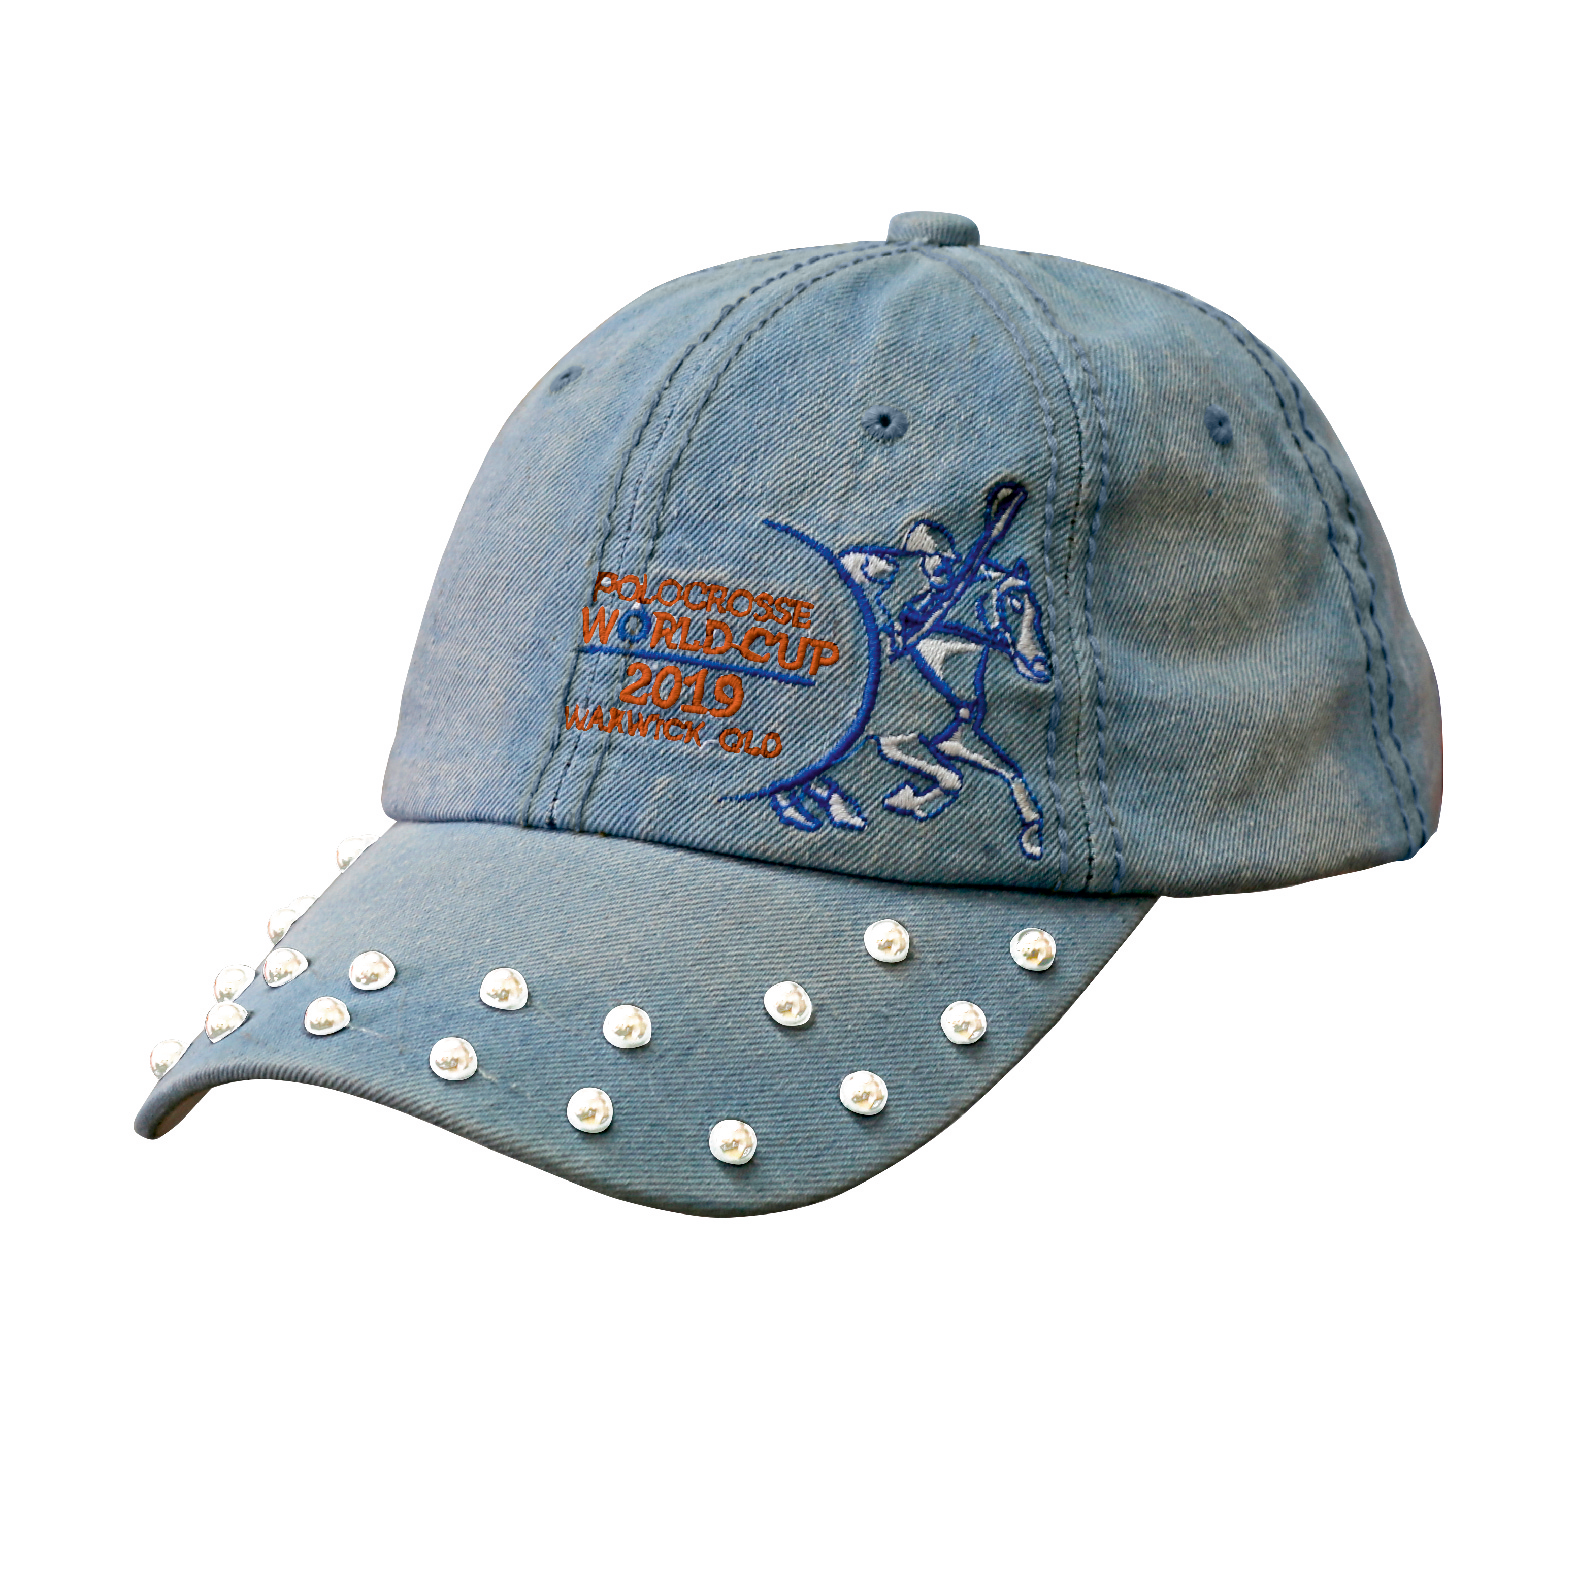 LADIES DENIM BASEBALL CAP WITH PEARLS ON PEAK -1.png